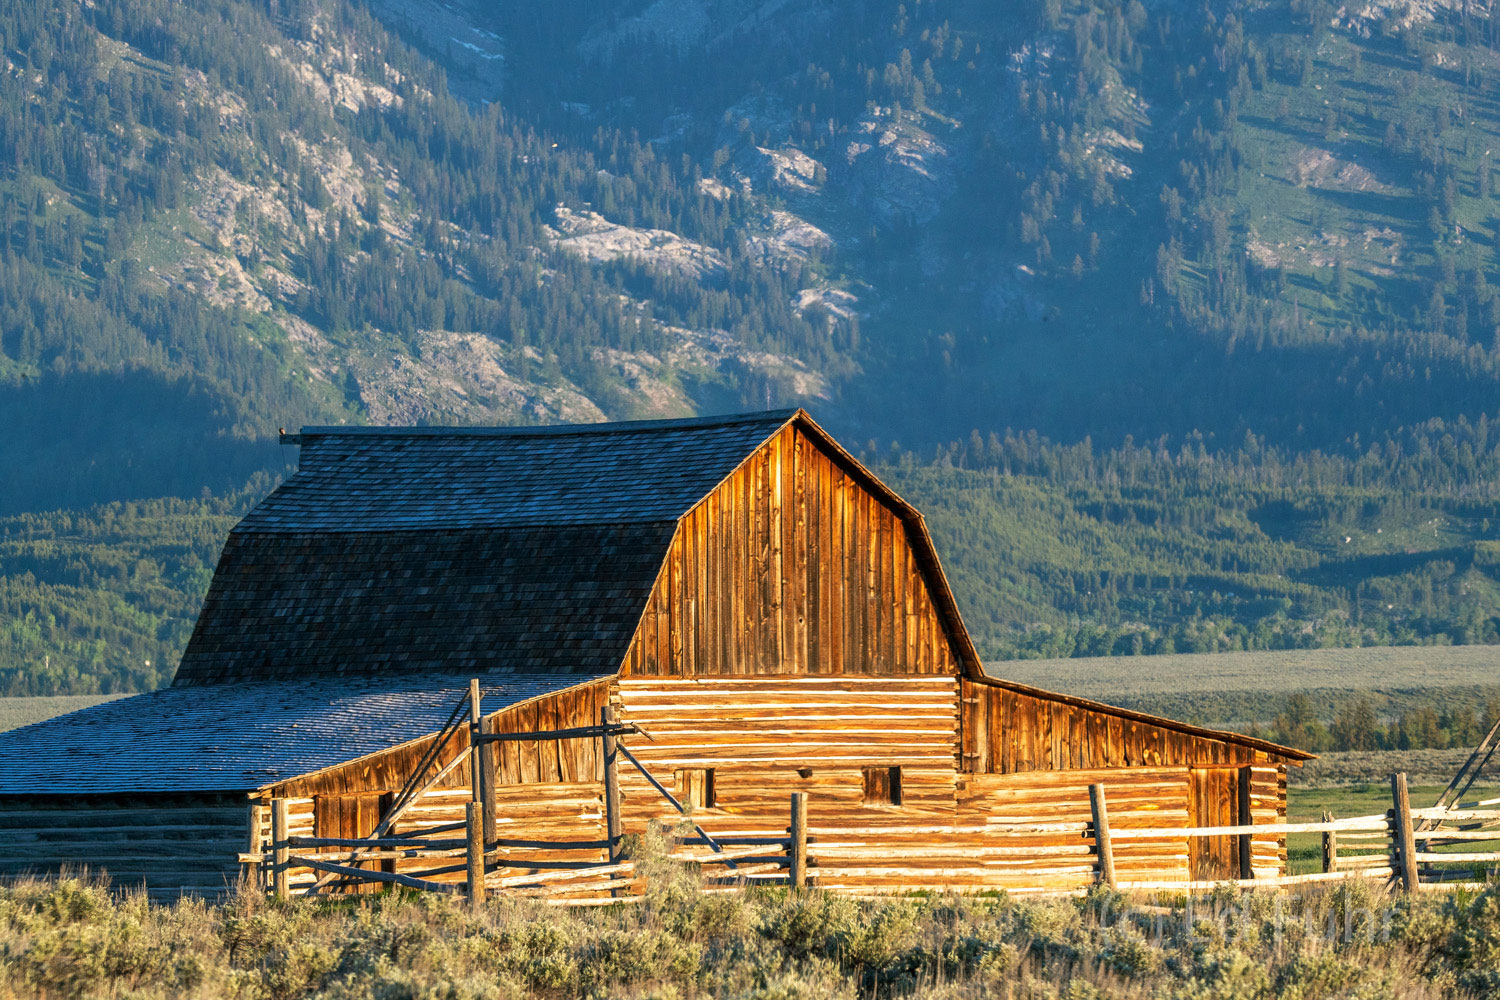 The John Moulton barn, one of the classic barns along Mormon Row, glows in the early sunrise.